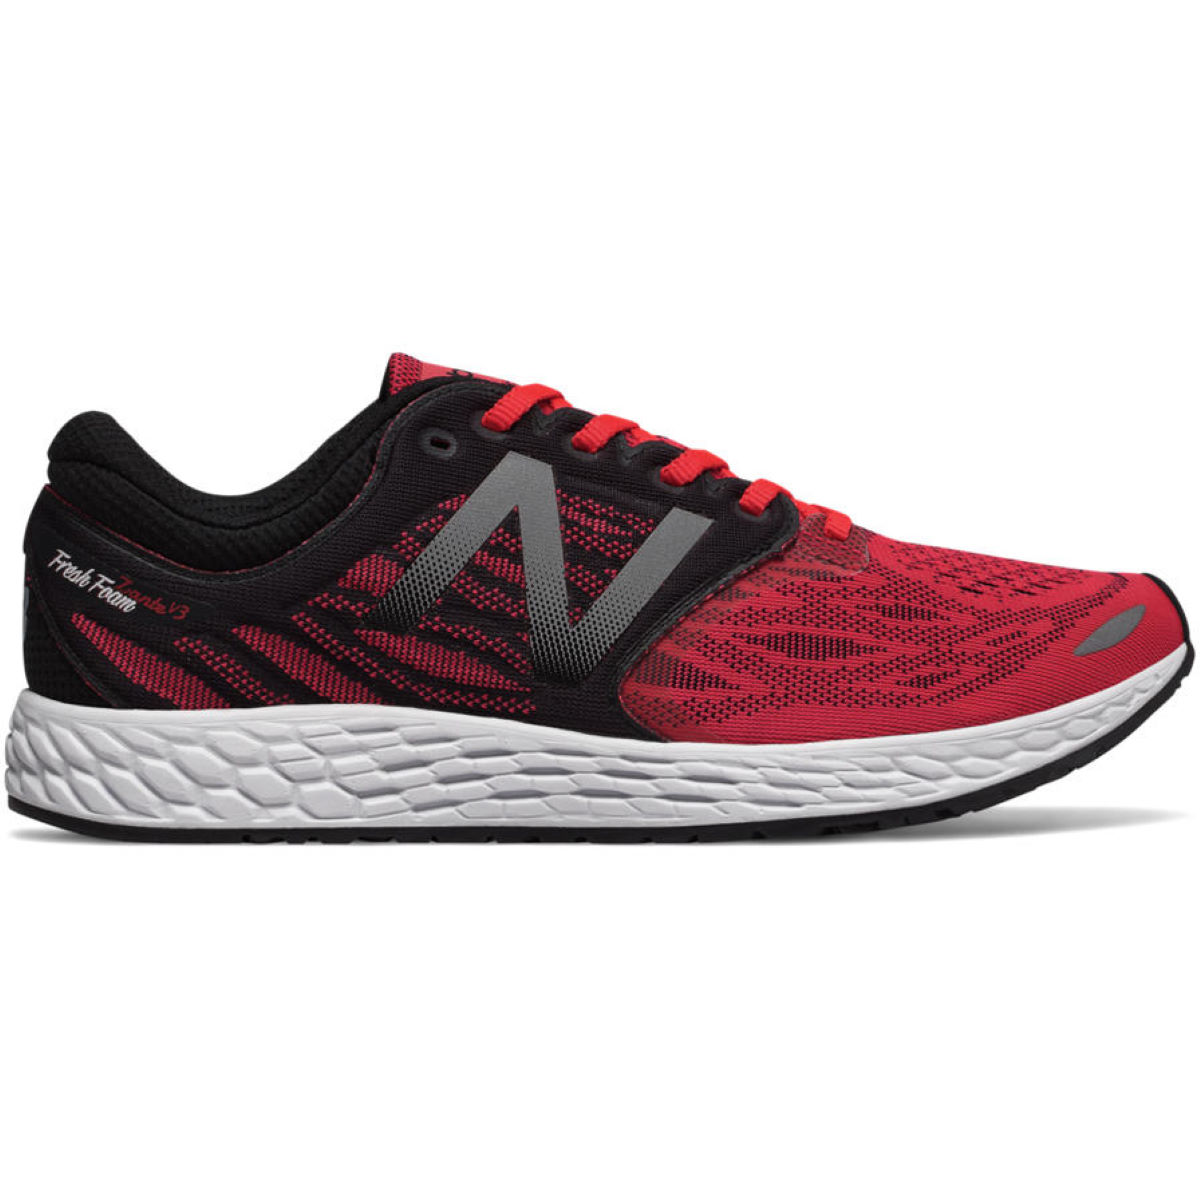 Zapatillas New Balance Fresh Foam Zante v3 (PV17) - Zapatillas acolchadas